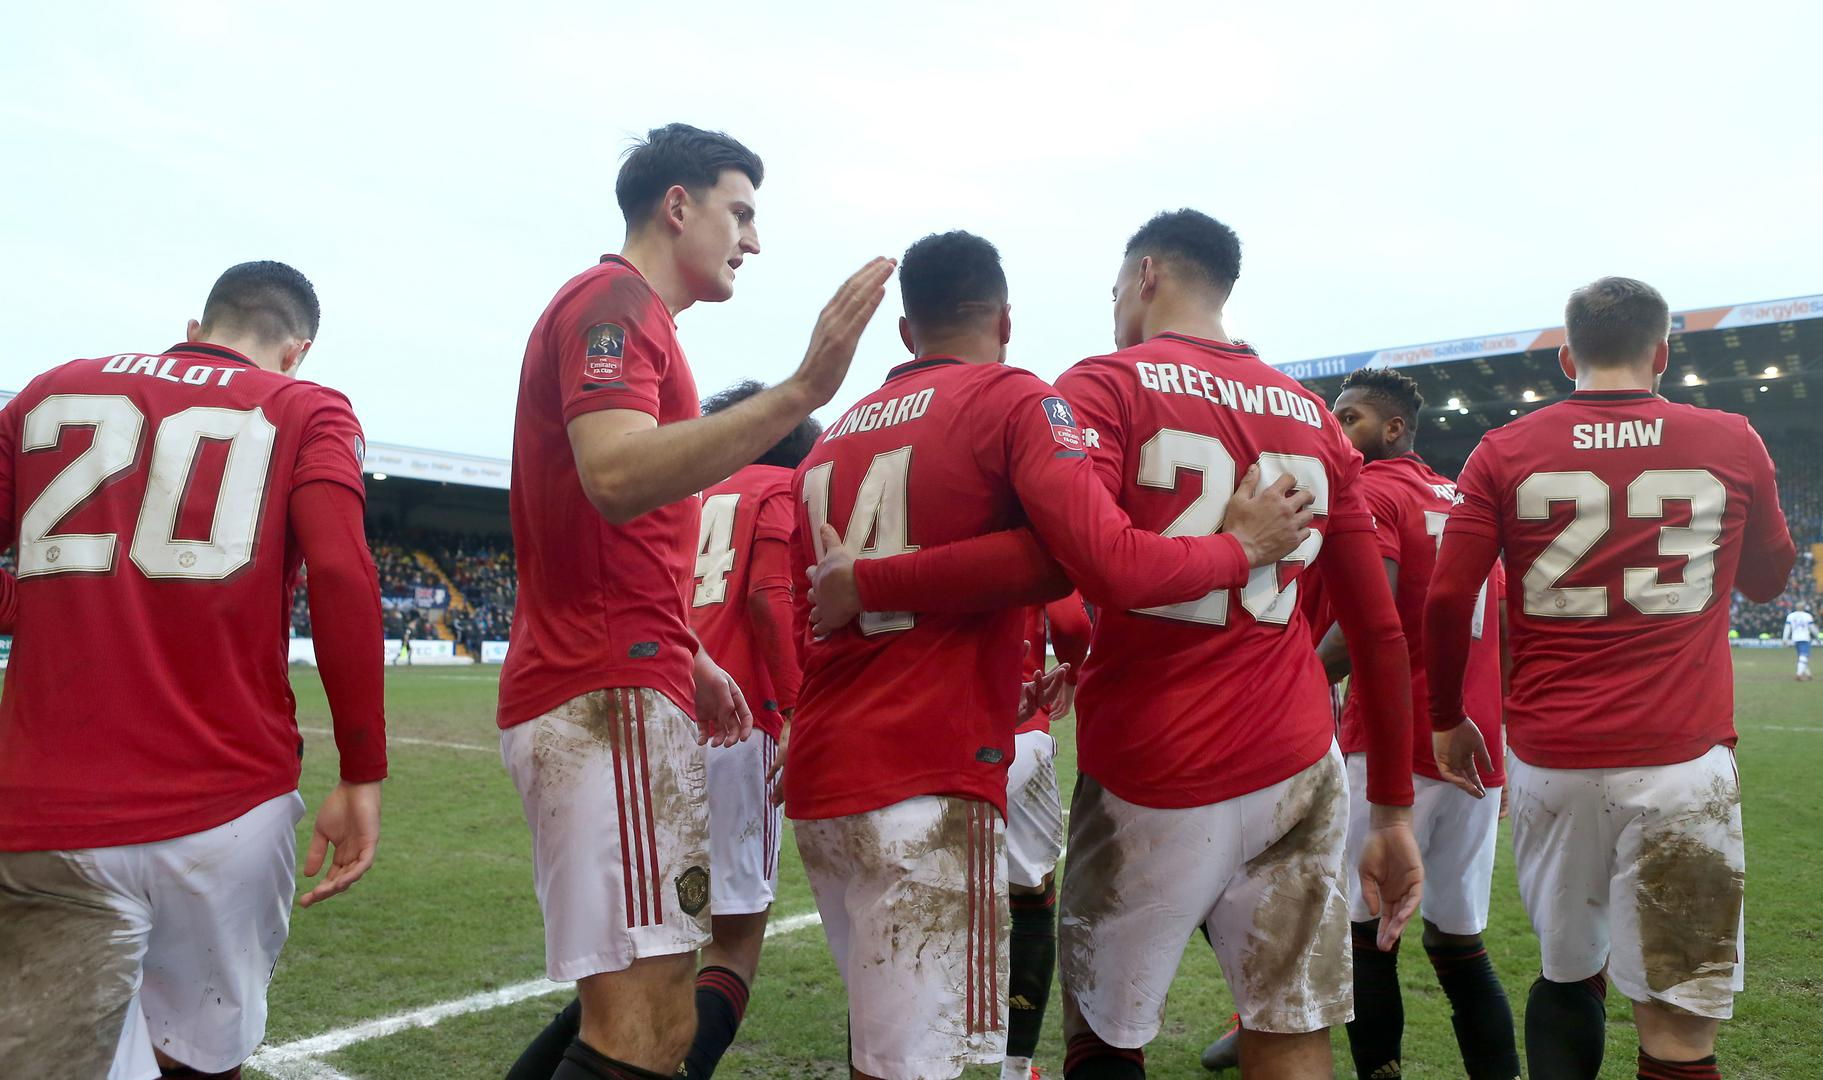 United celebrate a goal at Tranmere in the last round.